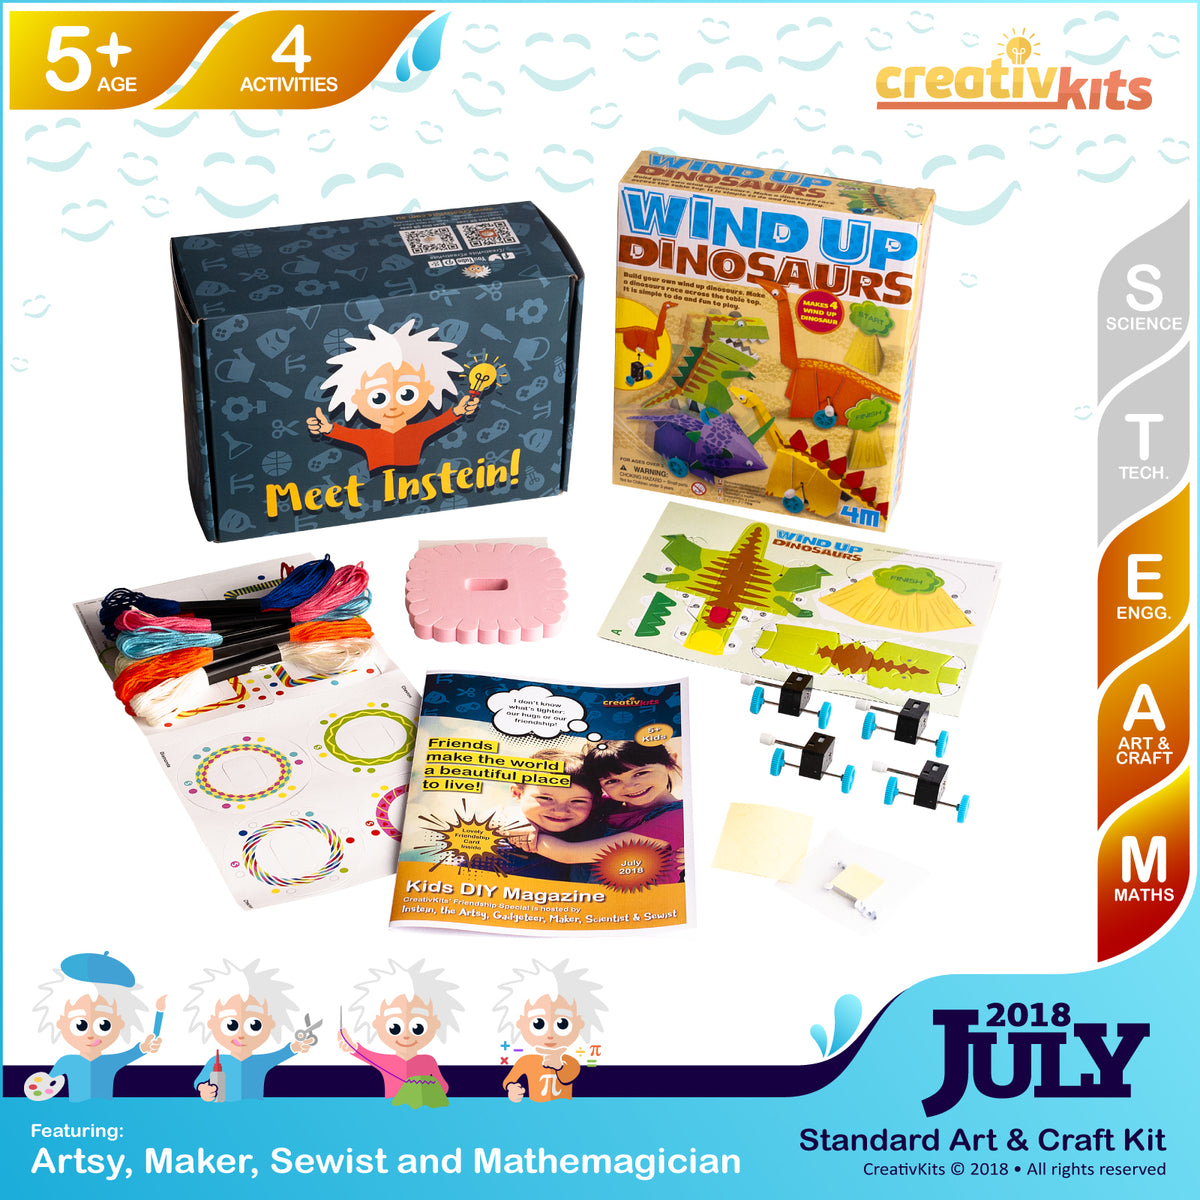 Glow Friendship Bracelets and Wind-up Dinosaurs Racing Set | July Art and Craft Kit | Age 5+